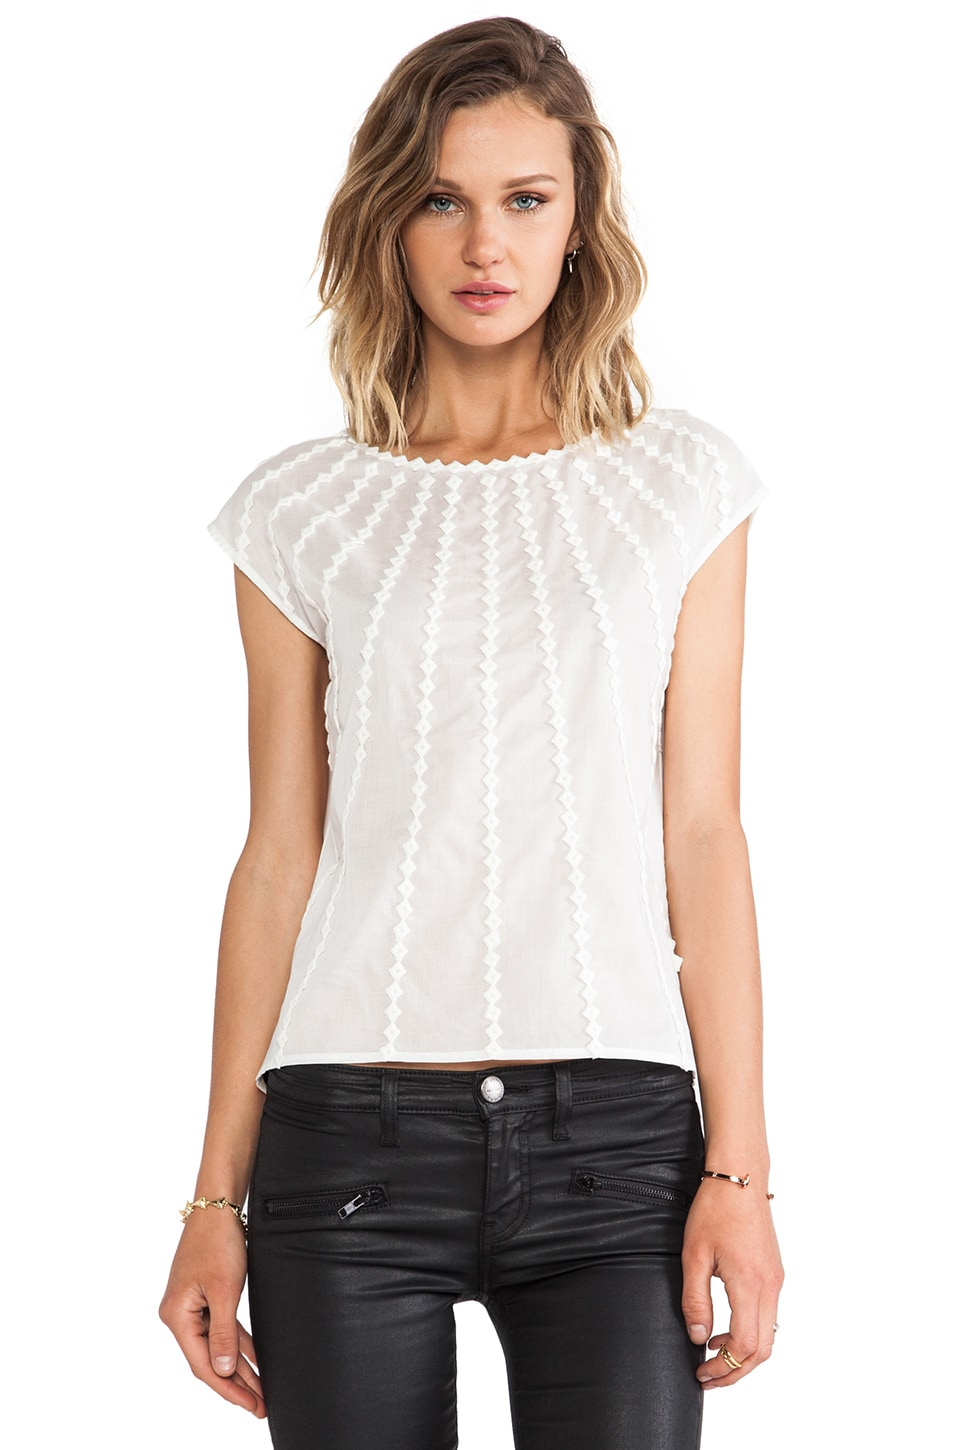 Halston Heritage Voile Top in White